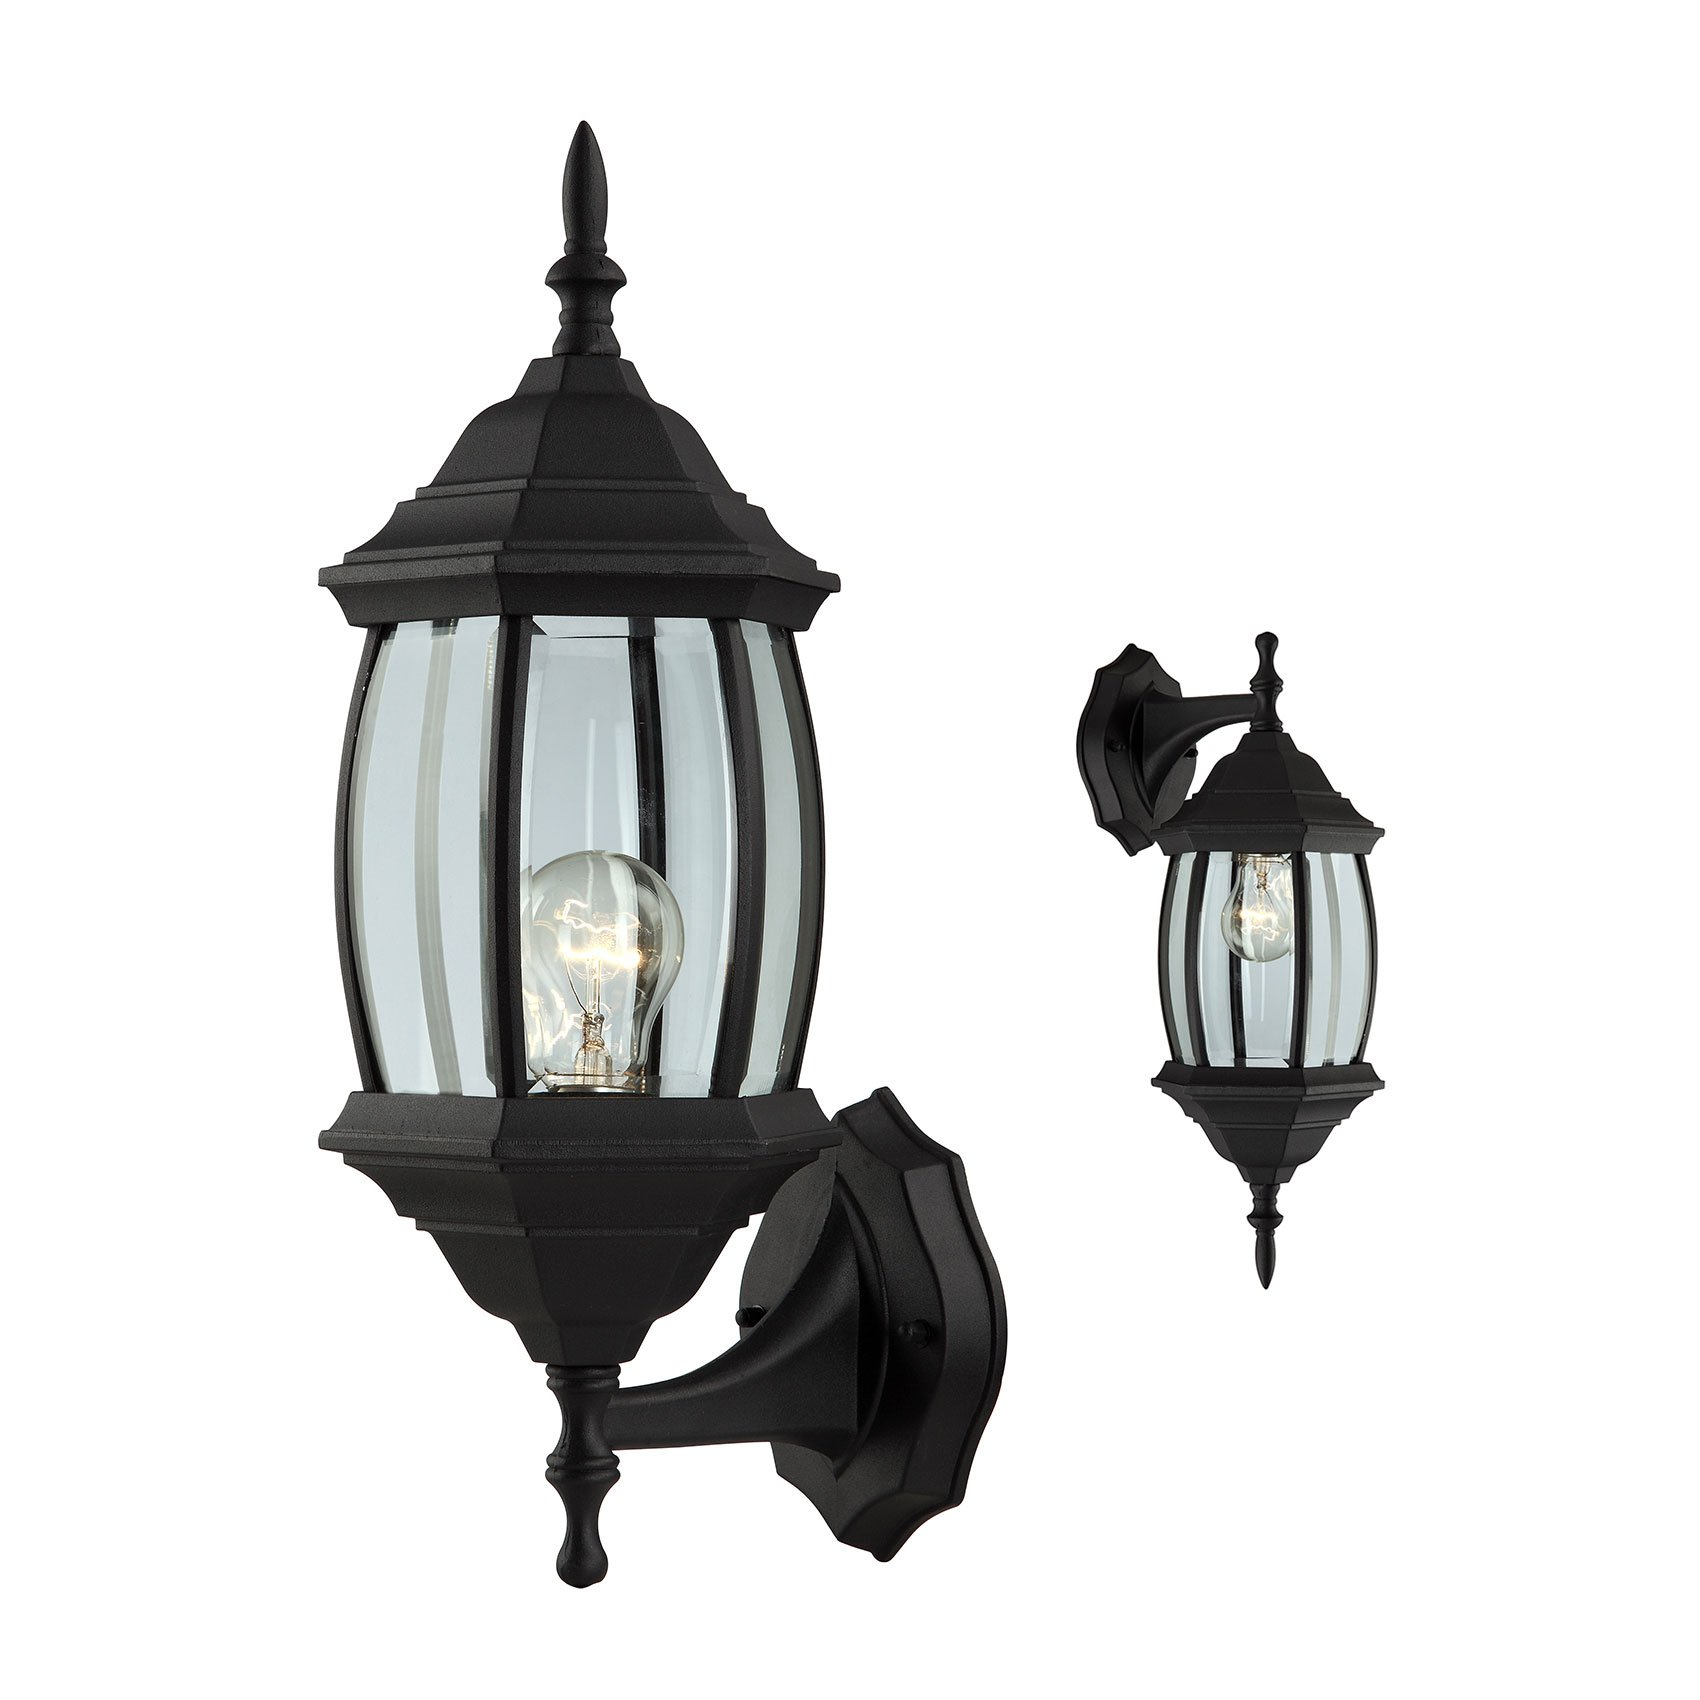 Exterior Garage Downlights: Outdoor Lighting - Blowout Sale! Save Up To 74%